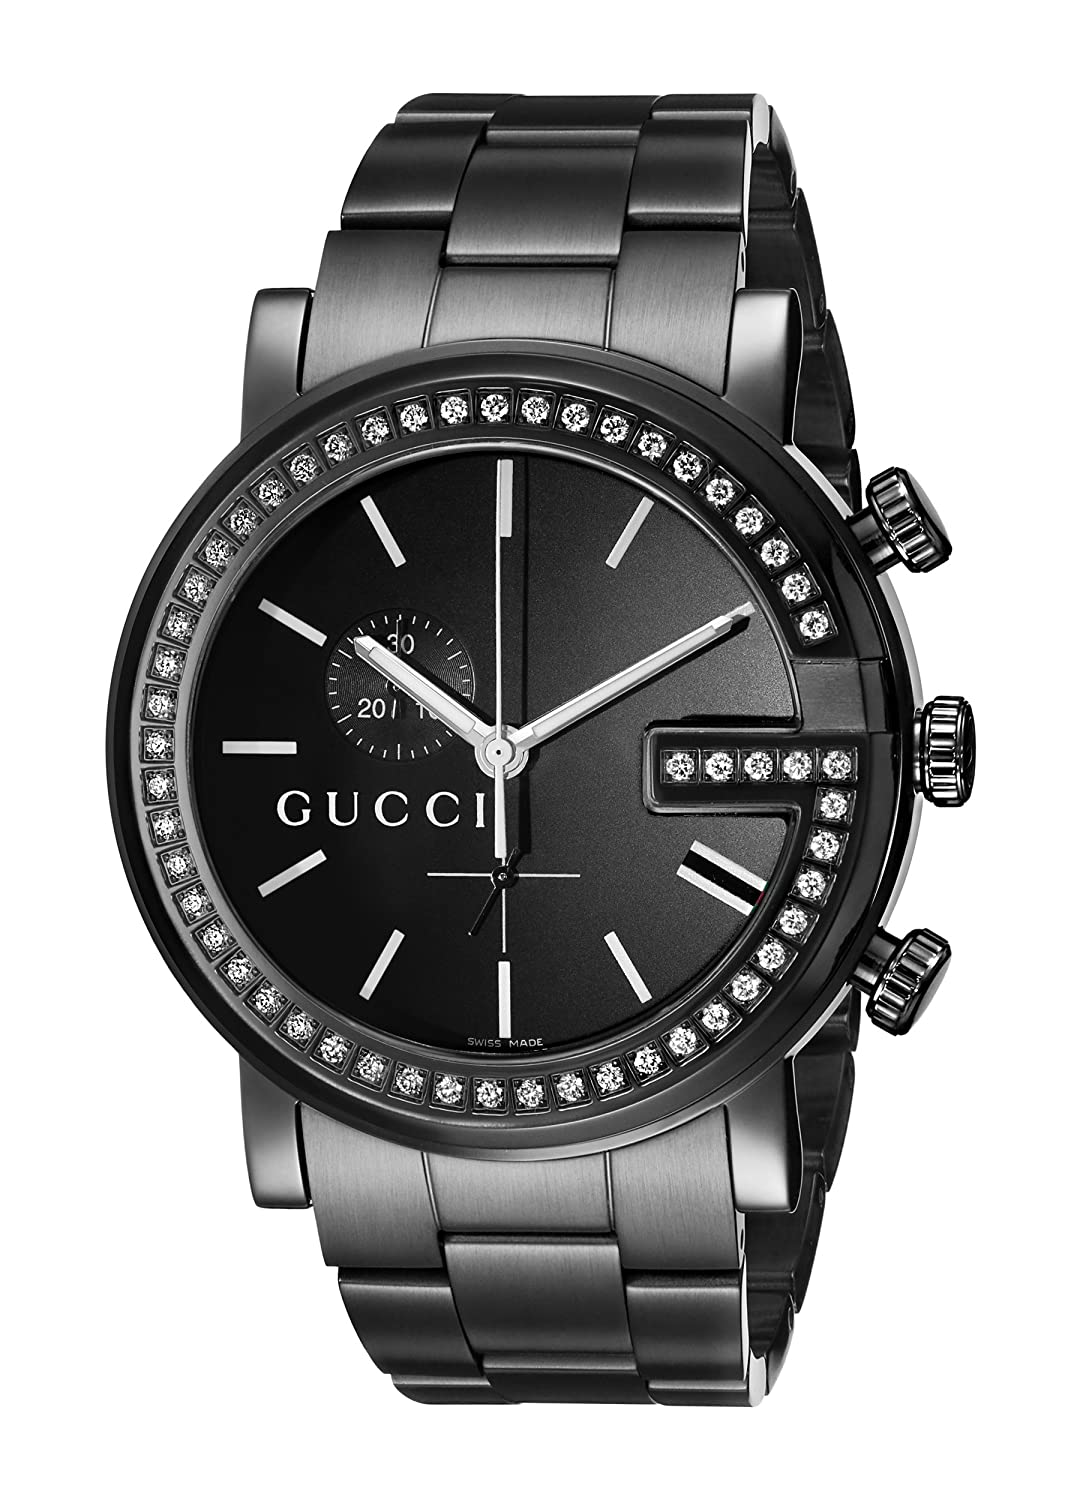 5219f3fb332 Gucci Men s YA101340 G-Chrono Black PVD with Diamond Accents Watch   Amazon.ca  Watches